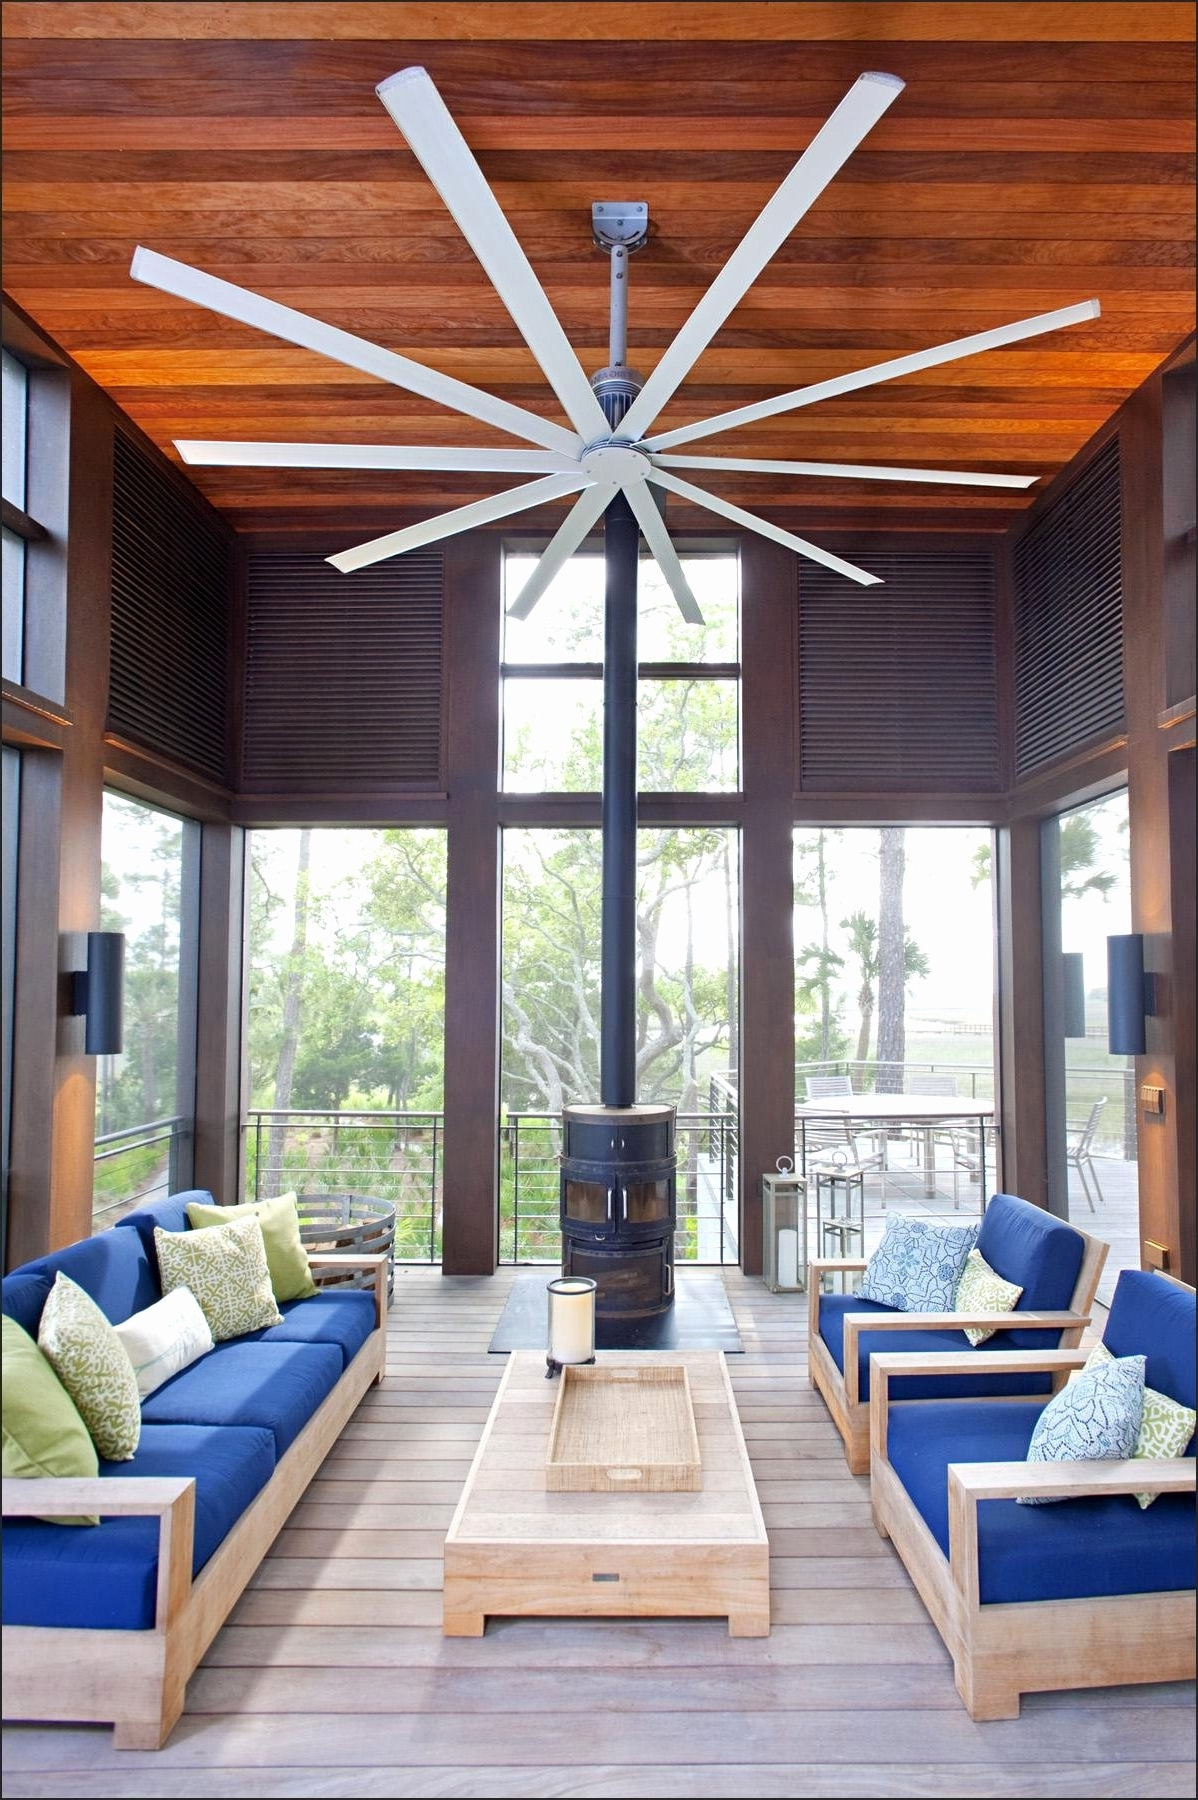 Water Misters For Patios Best Of 50 Awesome Outdoor Ceiling Fans With Regard To Recent Outdoor Ceiling Fans With Misters (View 11 of 20)